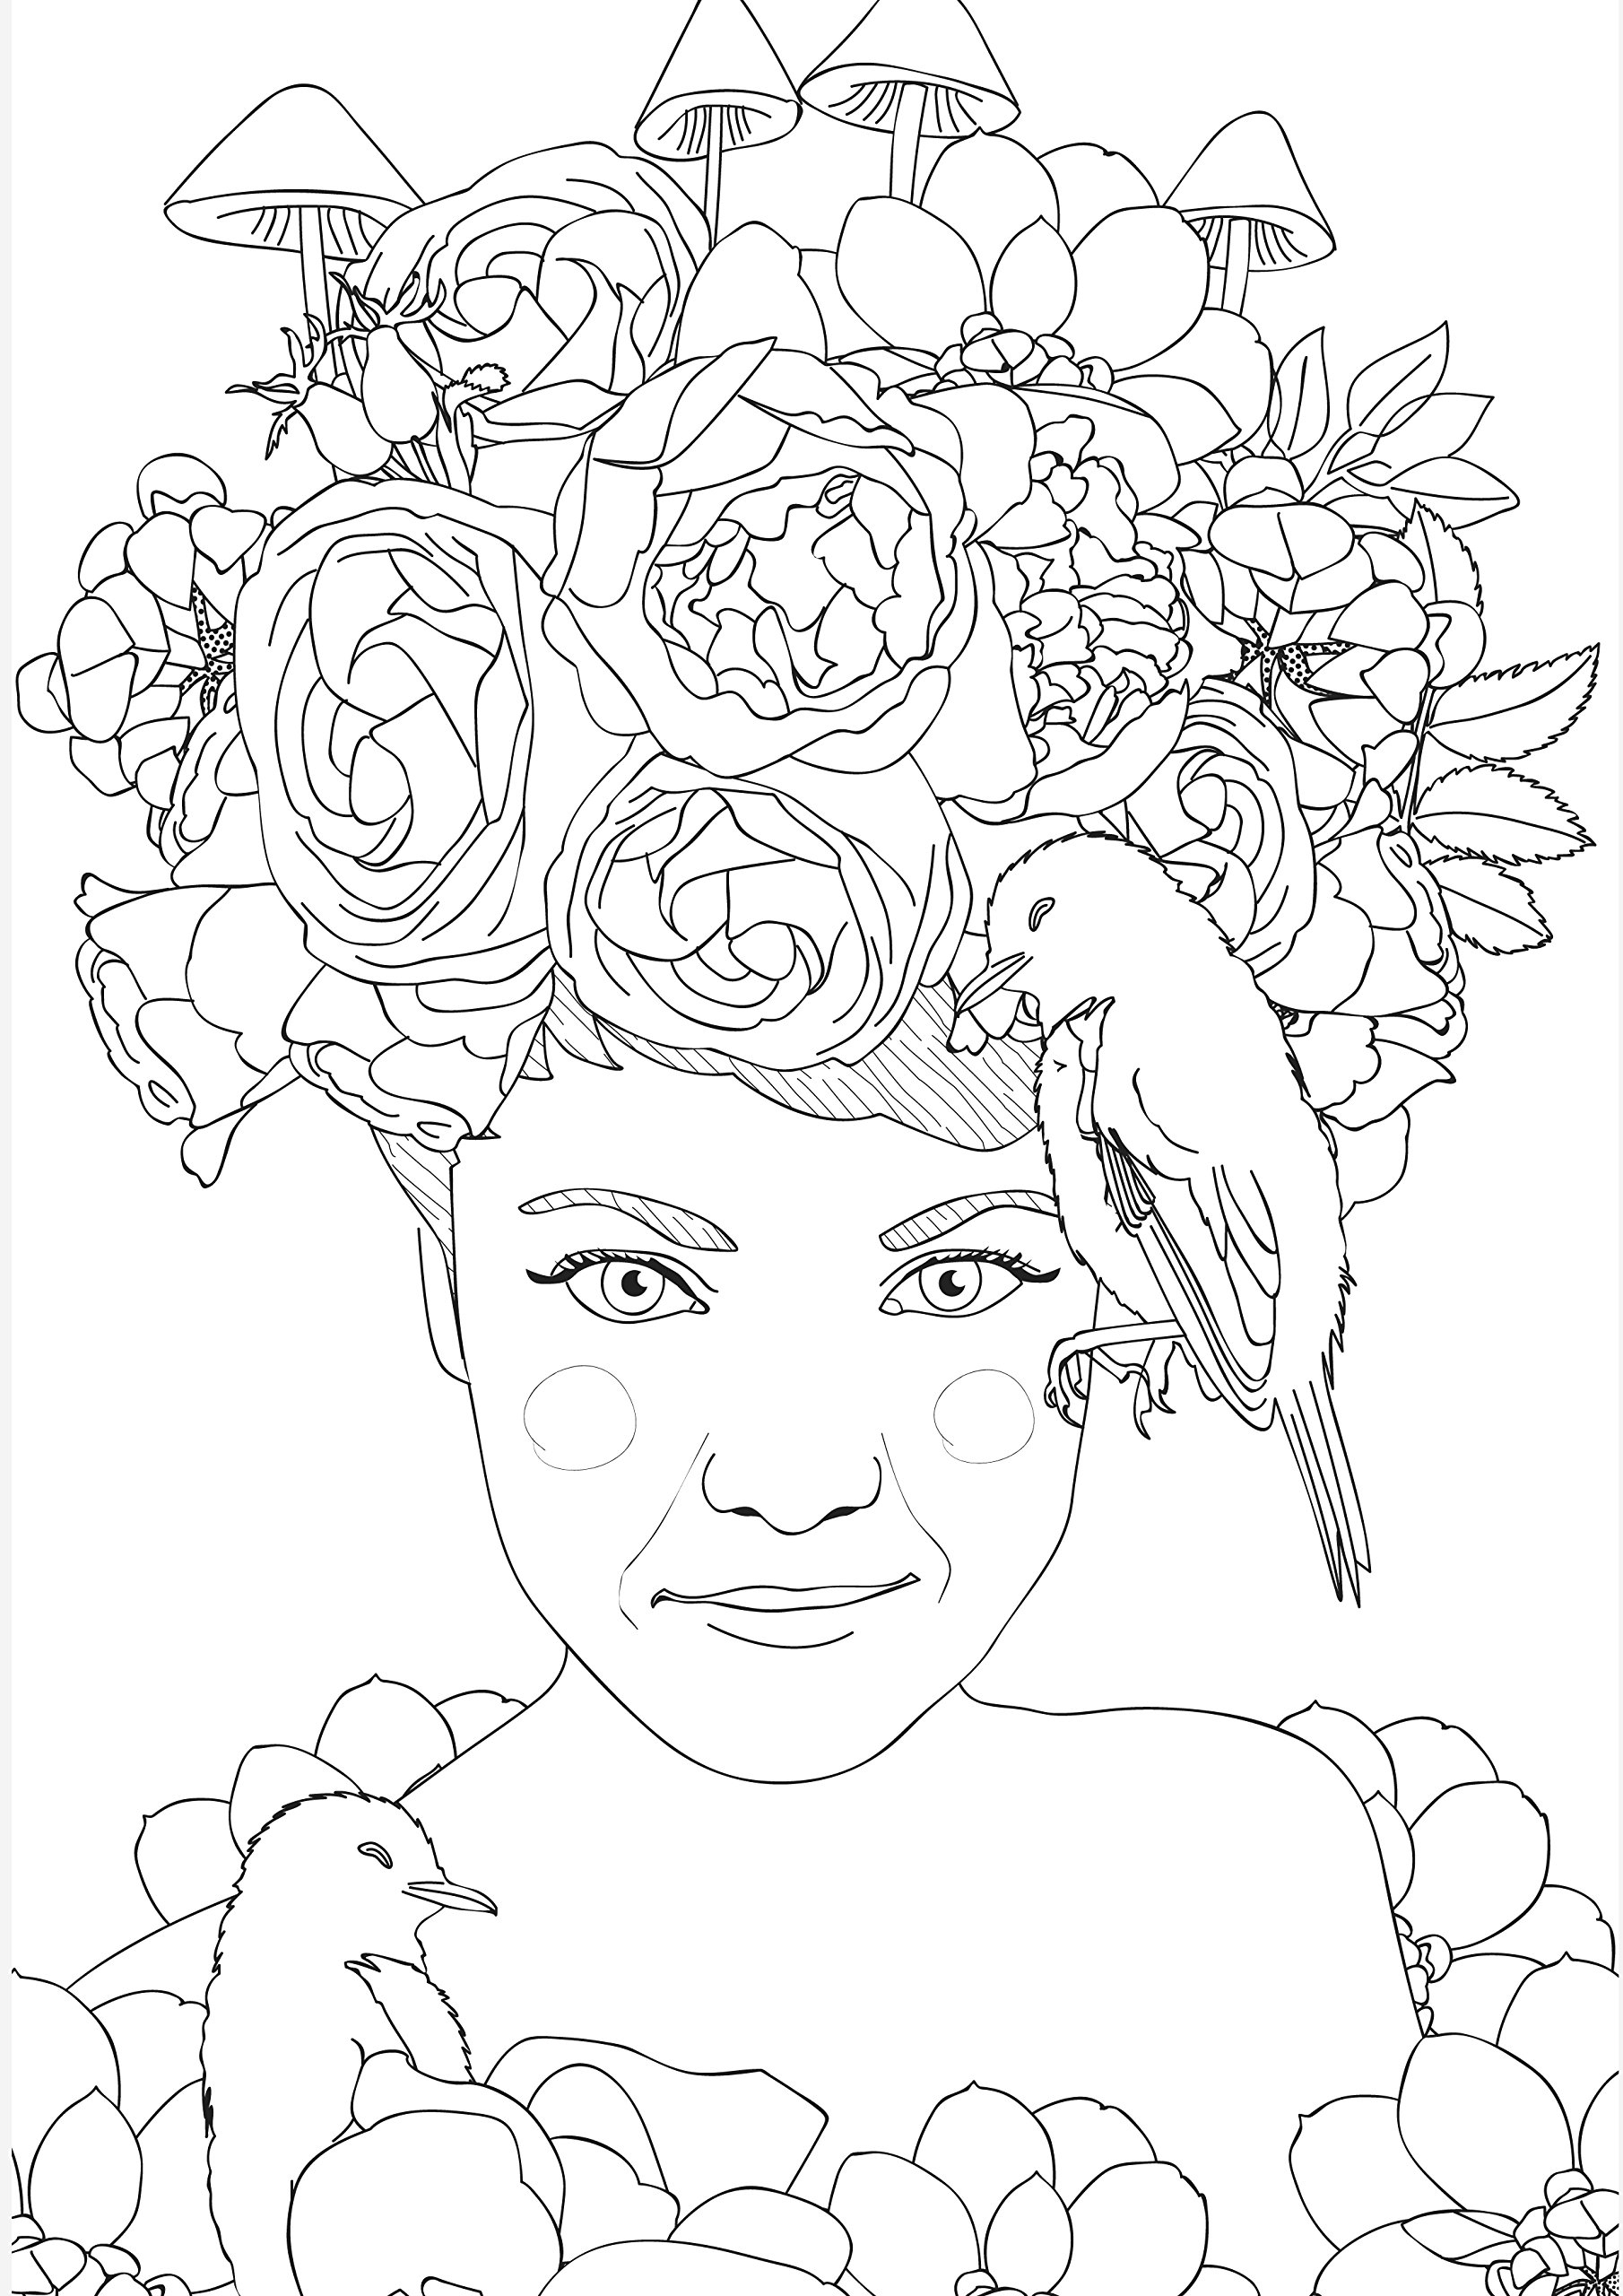 20 Dessins De Coloriage Anti Stress Amazon À Imprimer serapportantà Coloriage Amazon